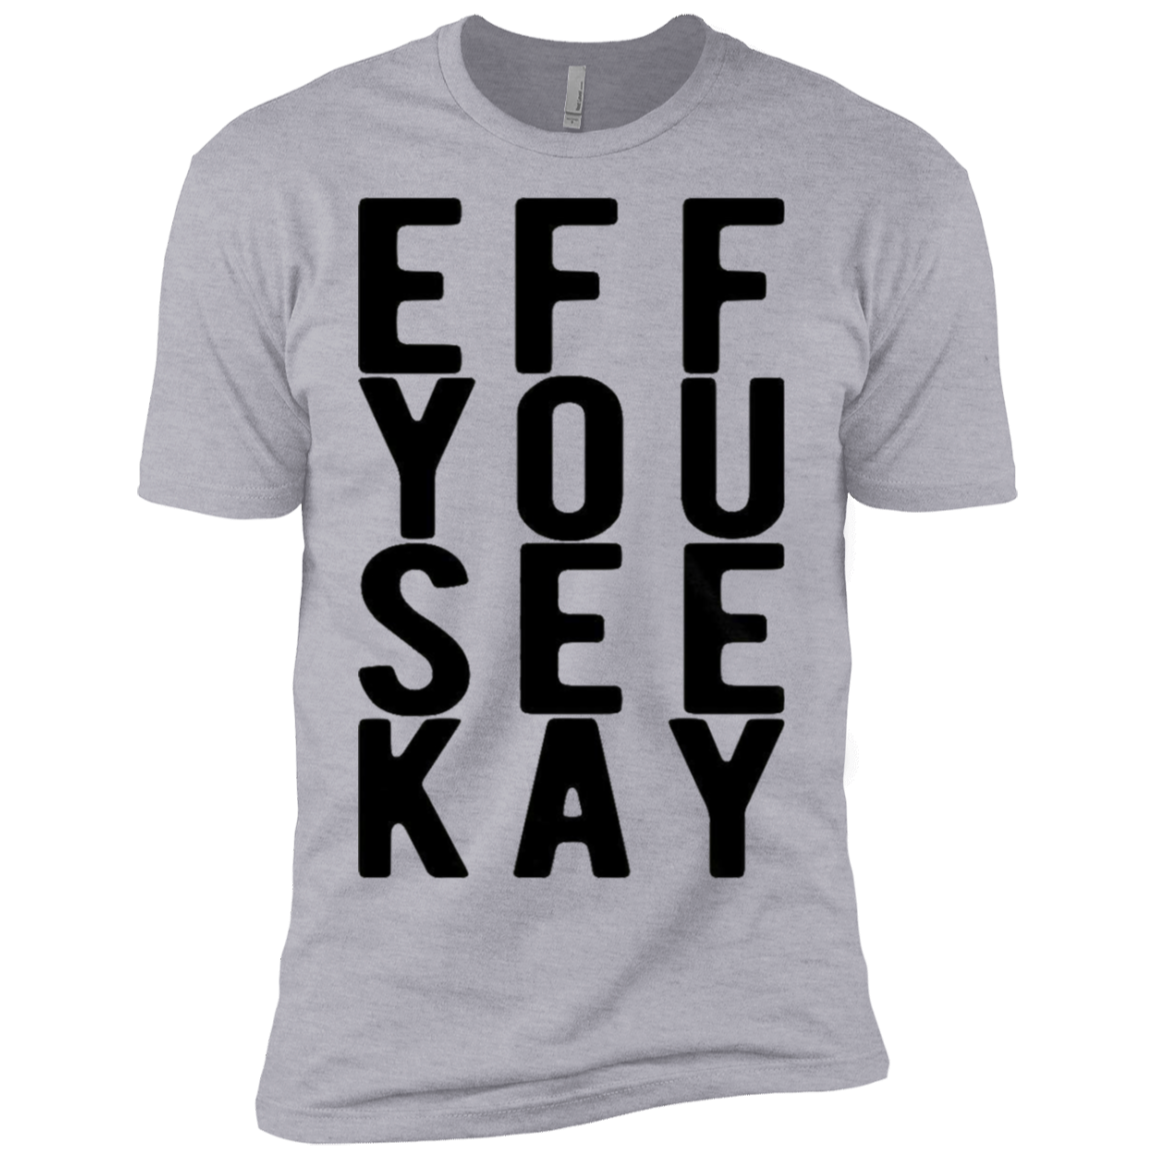 Eff You See Kay Men's Classic Tee